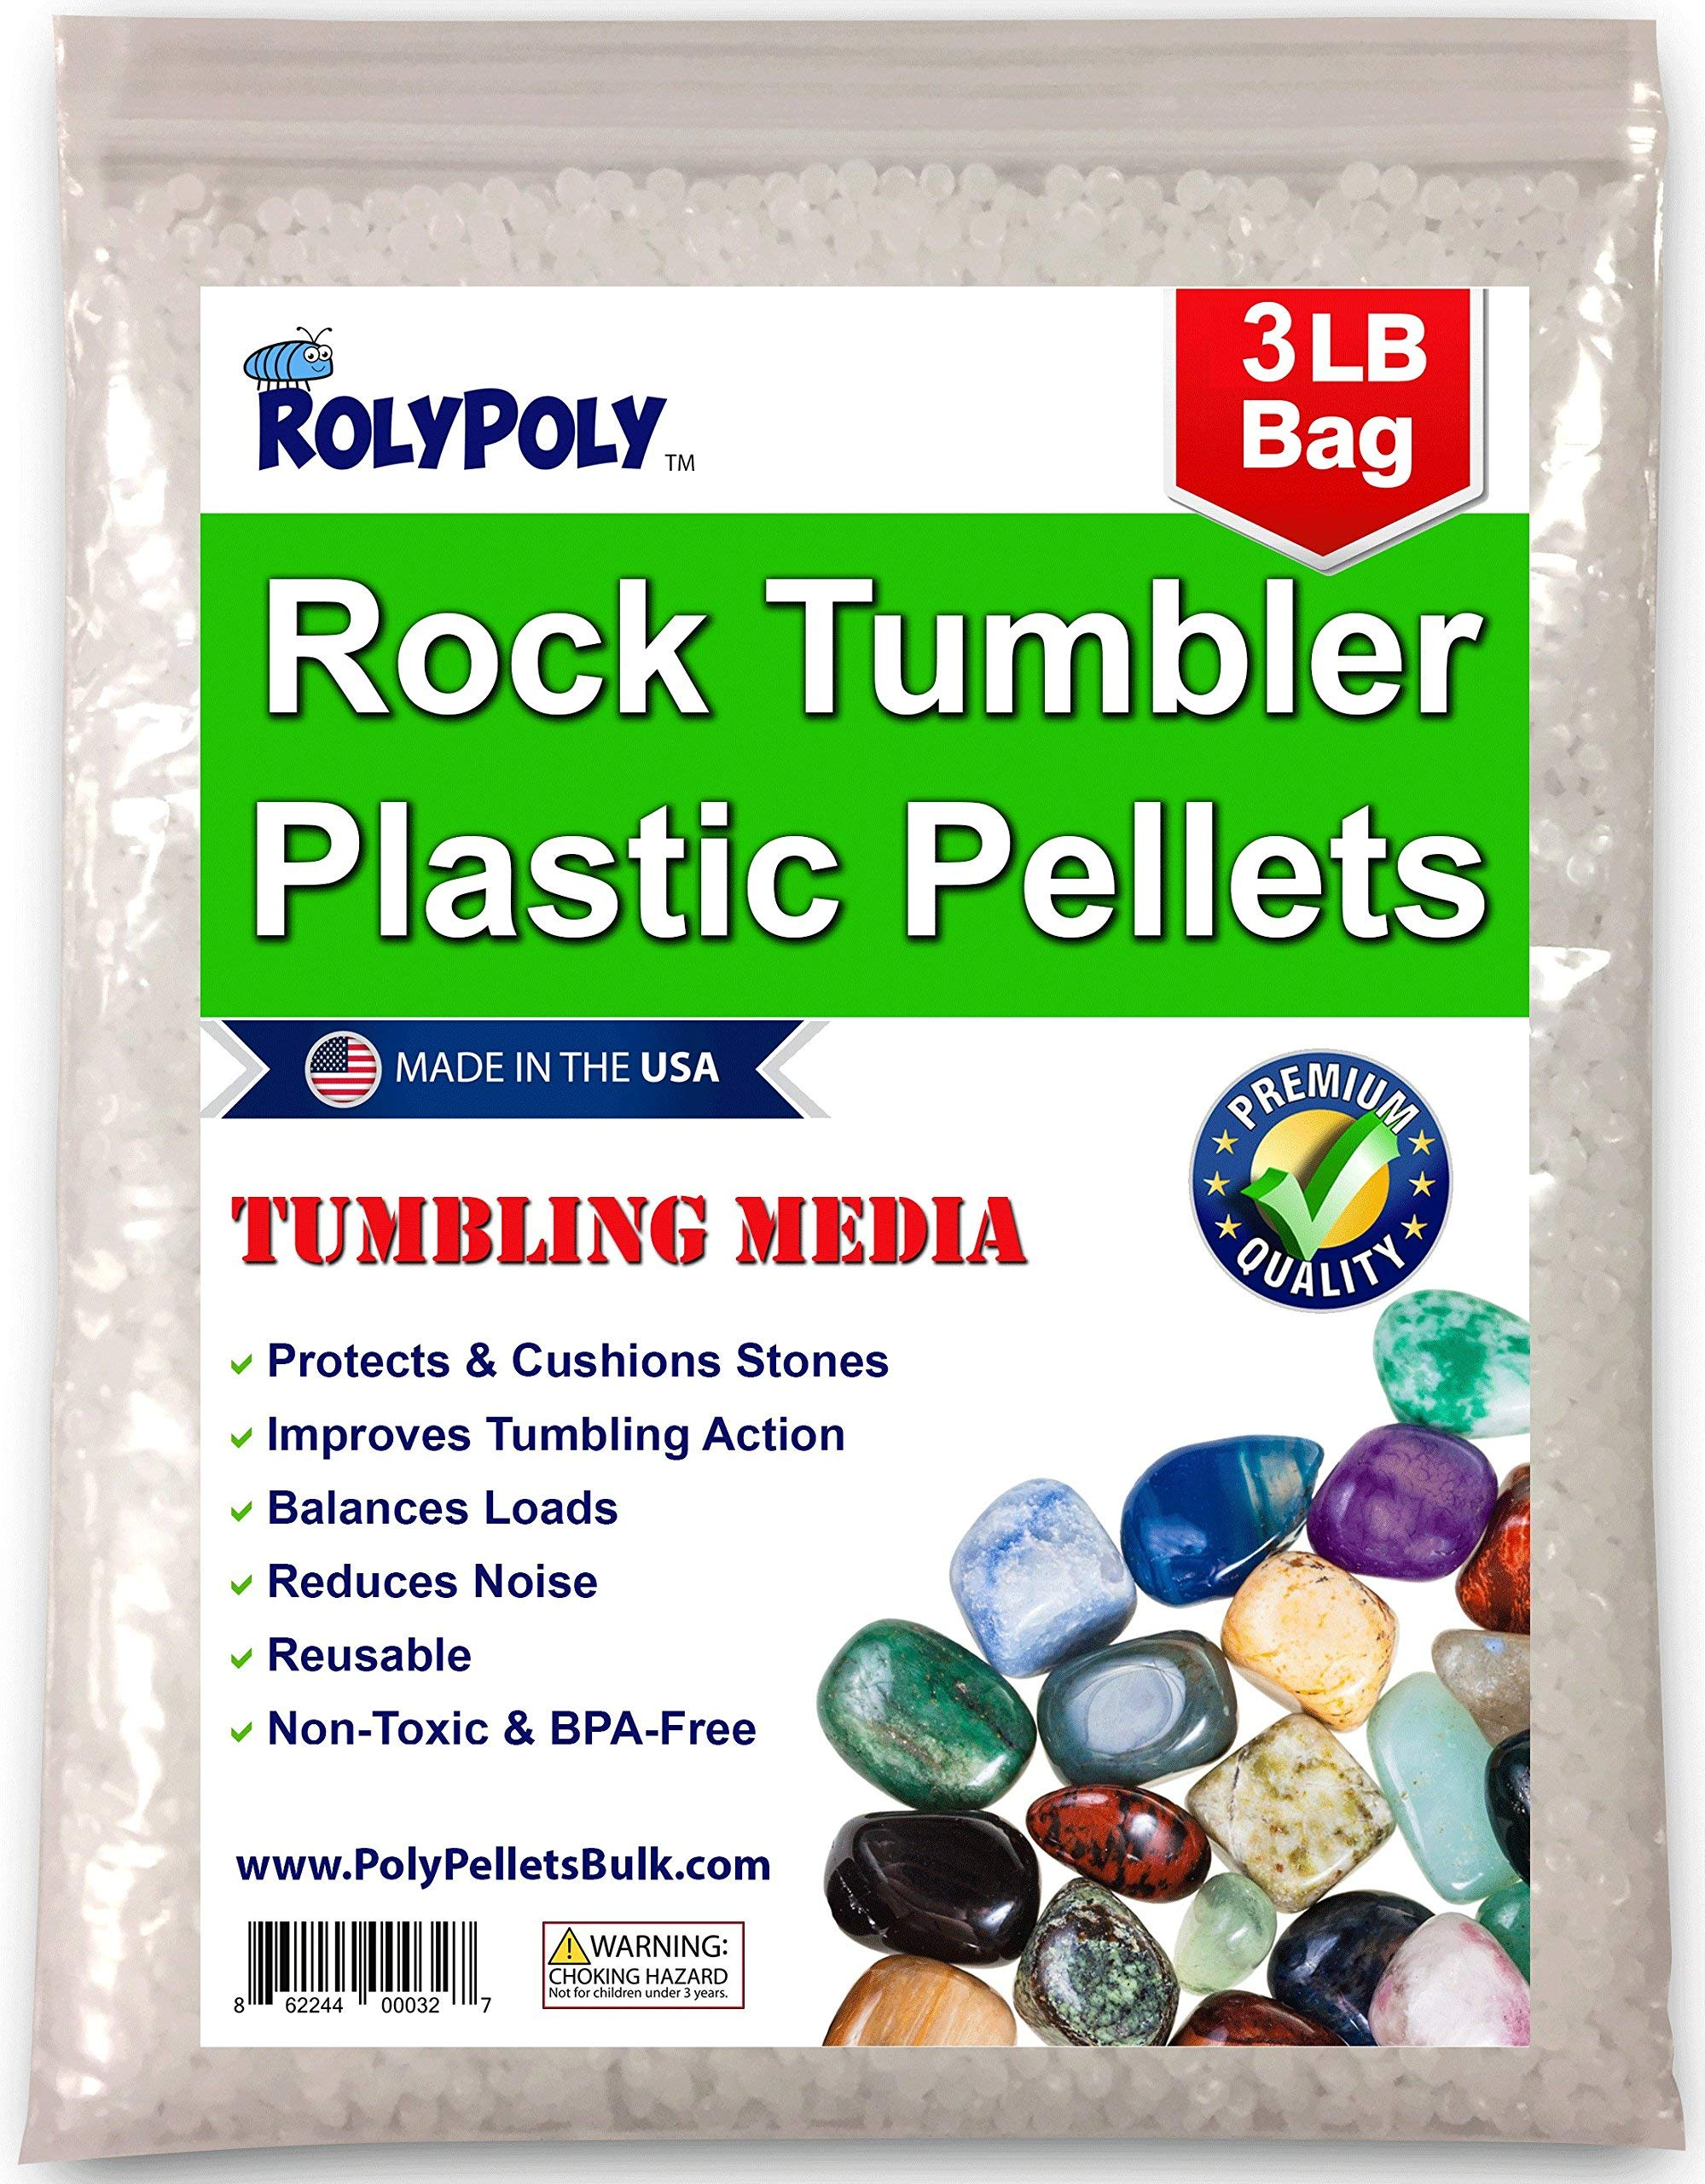 Plastic Pellets Rock Tumbling Media (3 LBS) for Rock Tumbler, Stone Tumbler, Rock Polisher, Filler Beads, Rock Tumbler Supplies in Heavy Duty Resealable Bag by Roly Poly